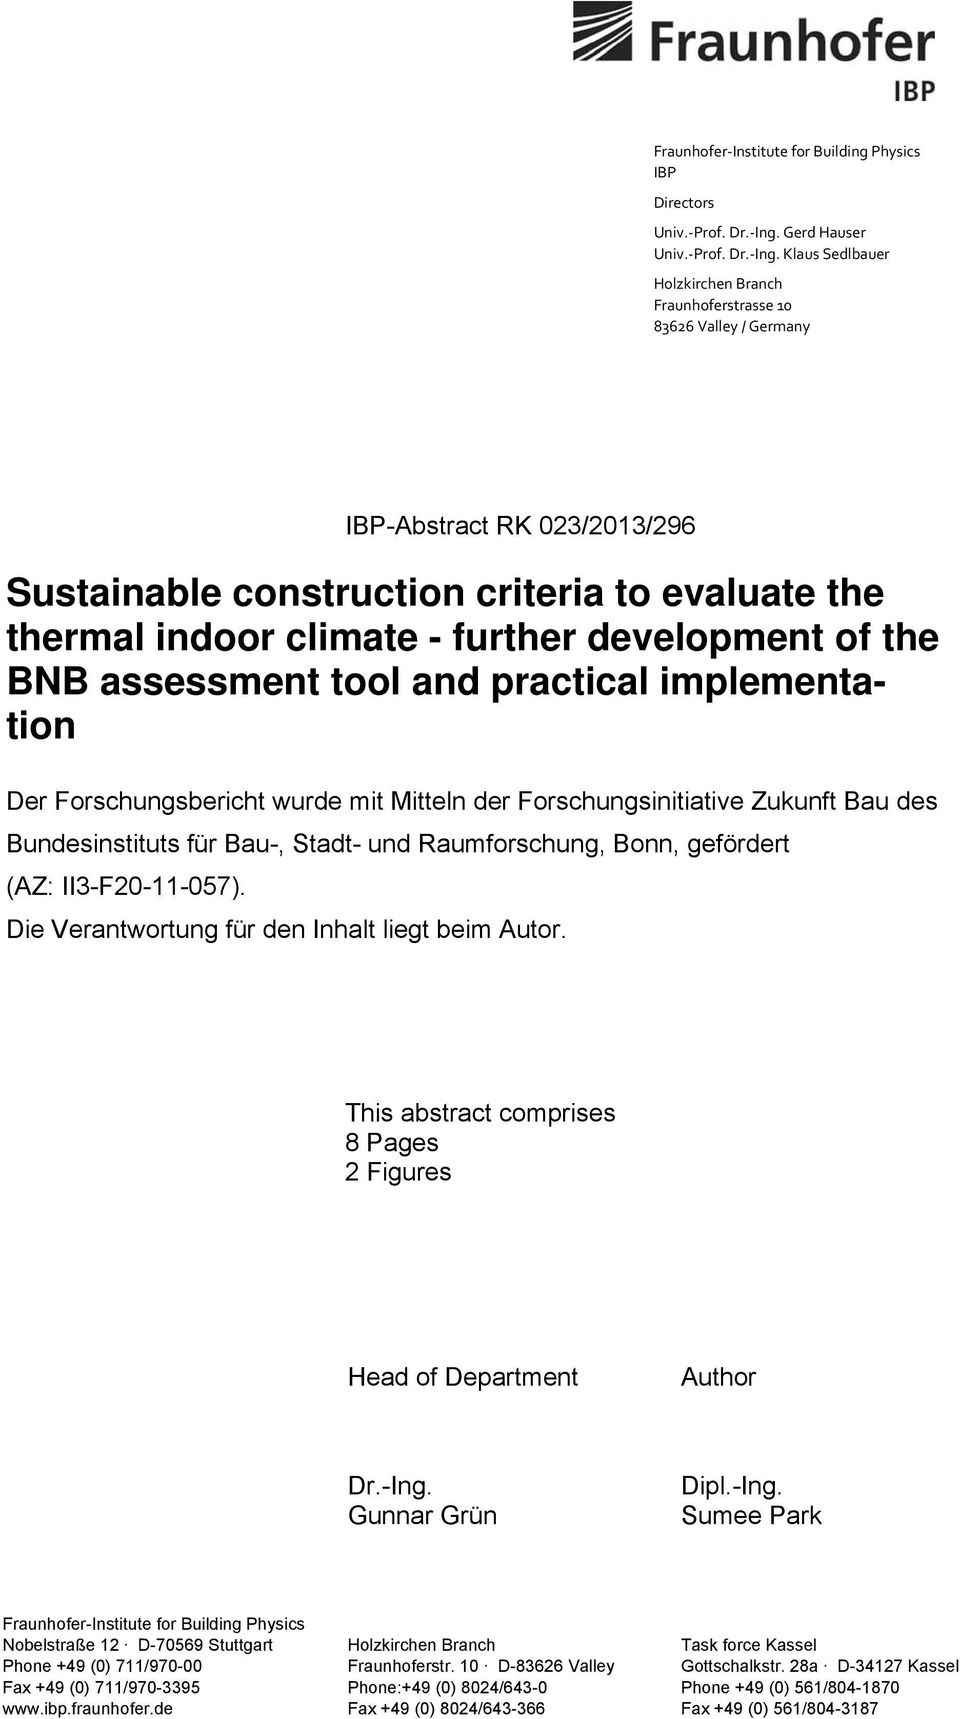 Klaus Sedlbauer Holzkirchen Branch Fraunhoferstrasse 10 83626 Valley / Germany IBP-Abstract RK 023/2013/296 Sustainable construction criteria to evaluate the thermal indoor climate - further